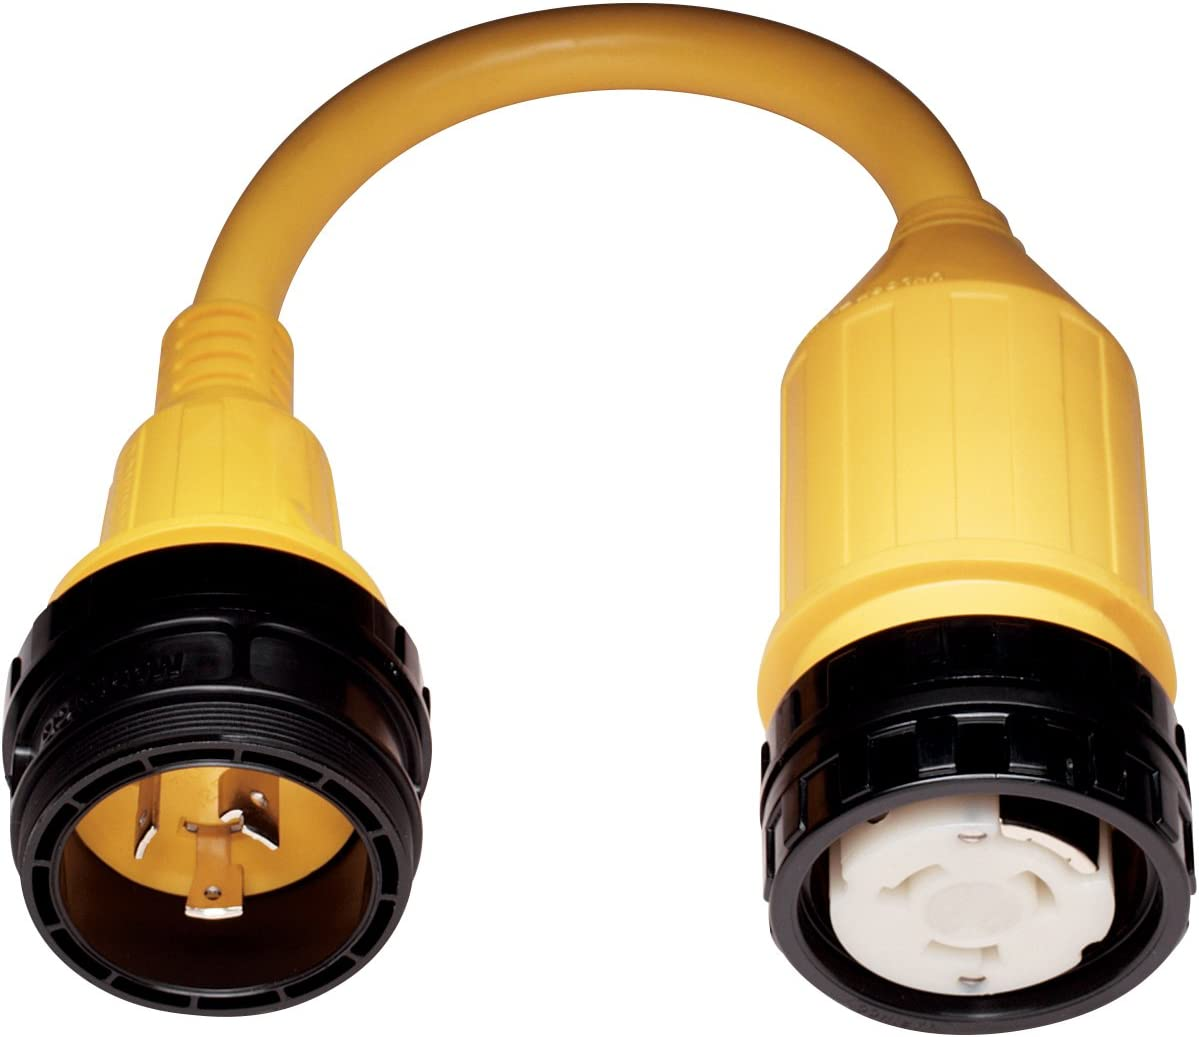 Xtreme Heaters Pigtail Electrical Power Adapter Cord 30 Amp Shore Male Plug to 15 Amp Connector with LED